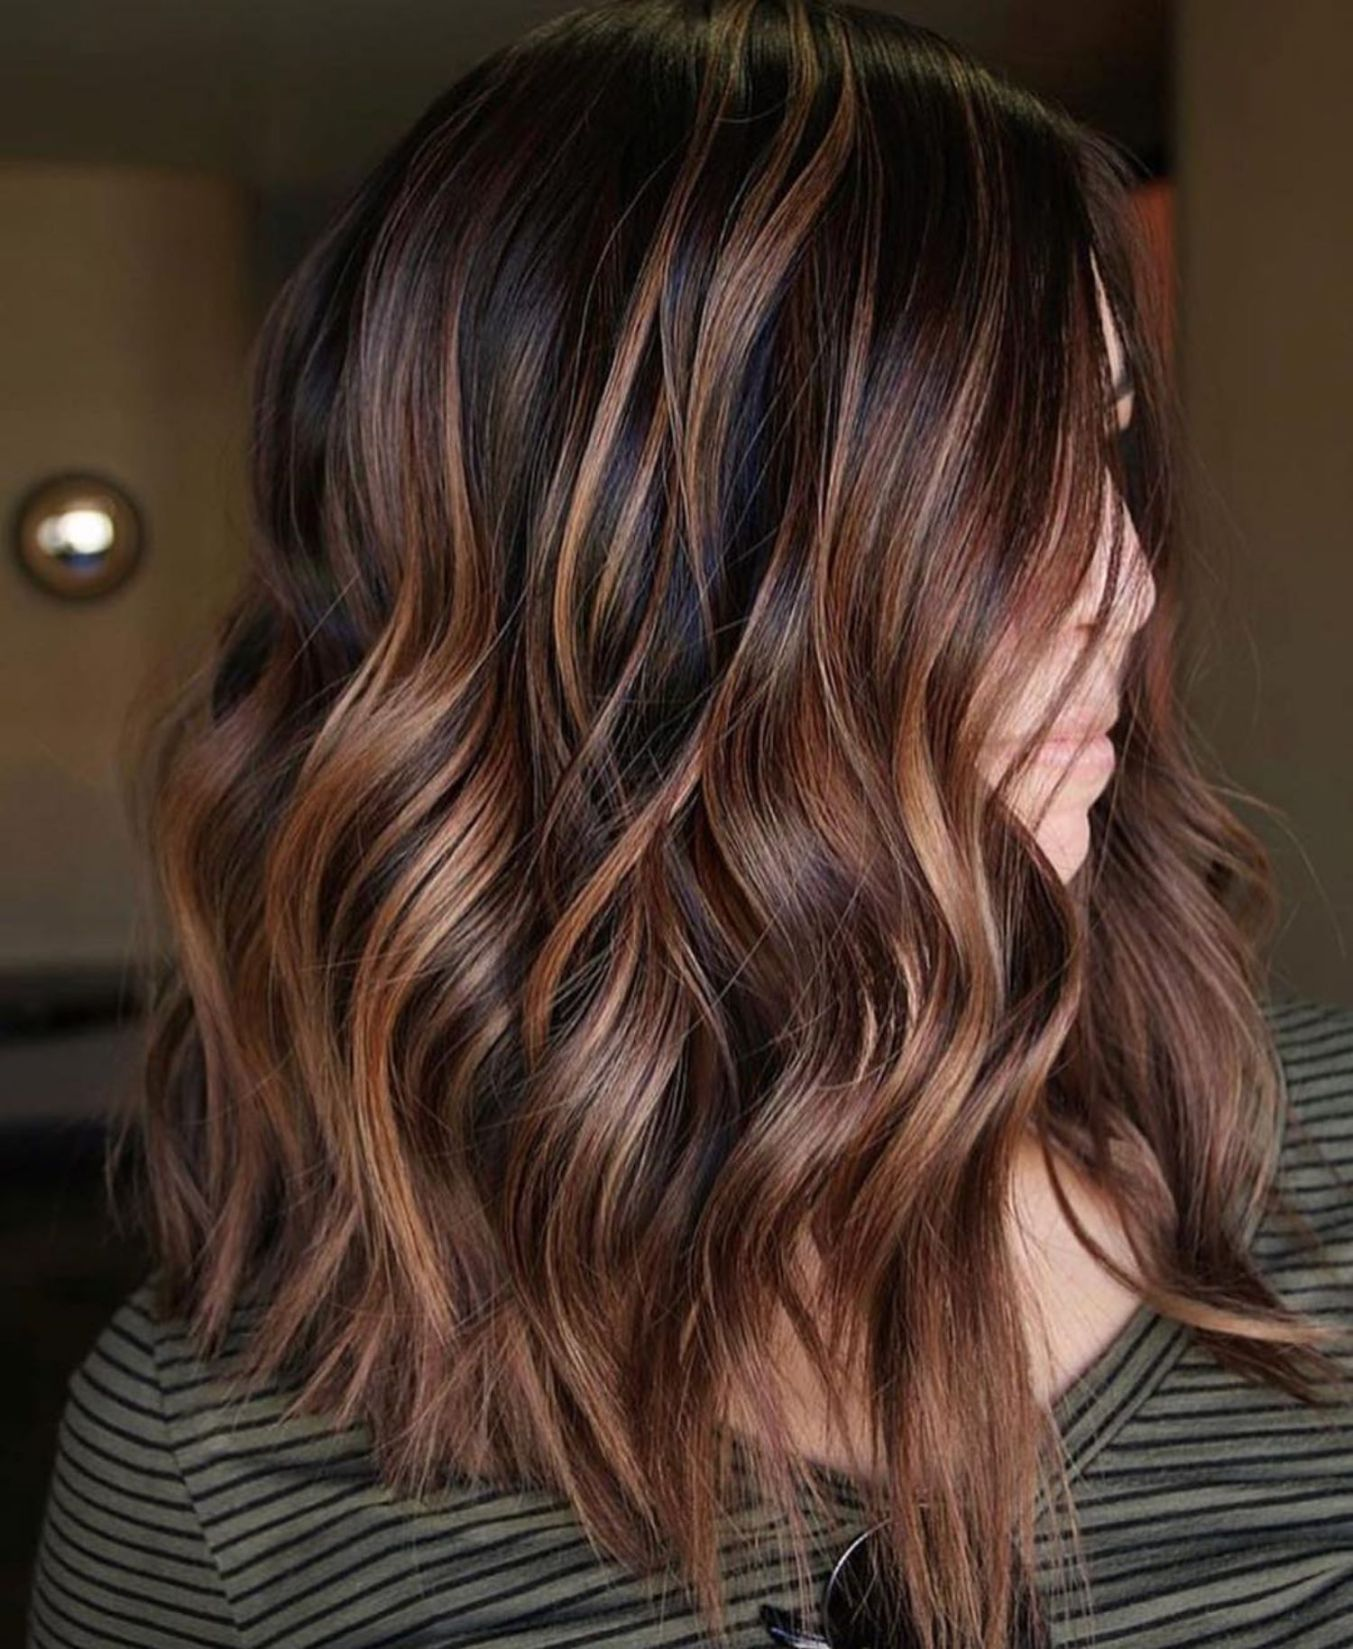 60 Hairstyles Featuring Dark Brown Hair With Highlights Chocolate Copper Balayage For Black Hair Brown Hair Balayage Medium Length Hair Styles Brown Balayage